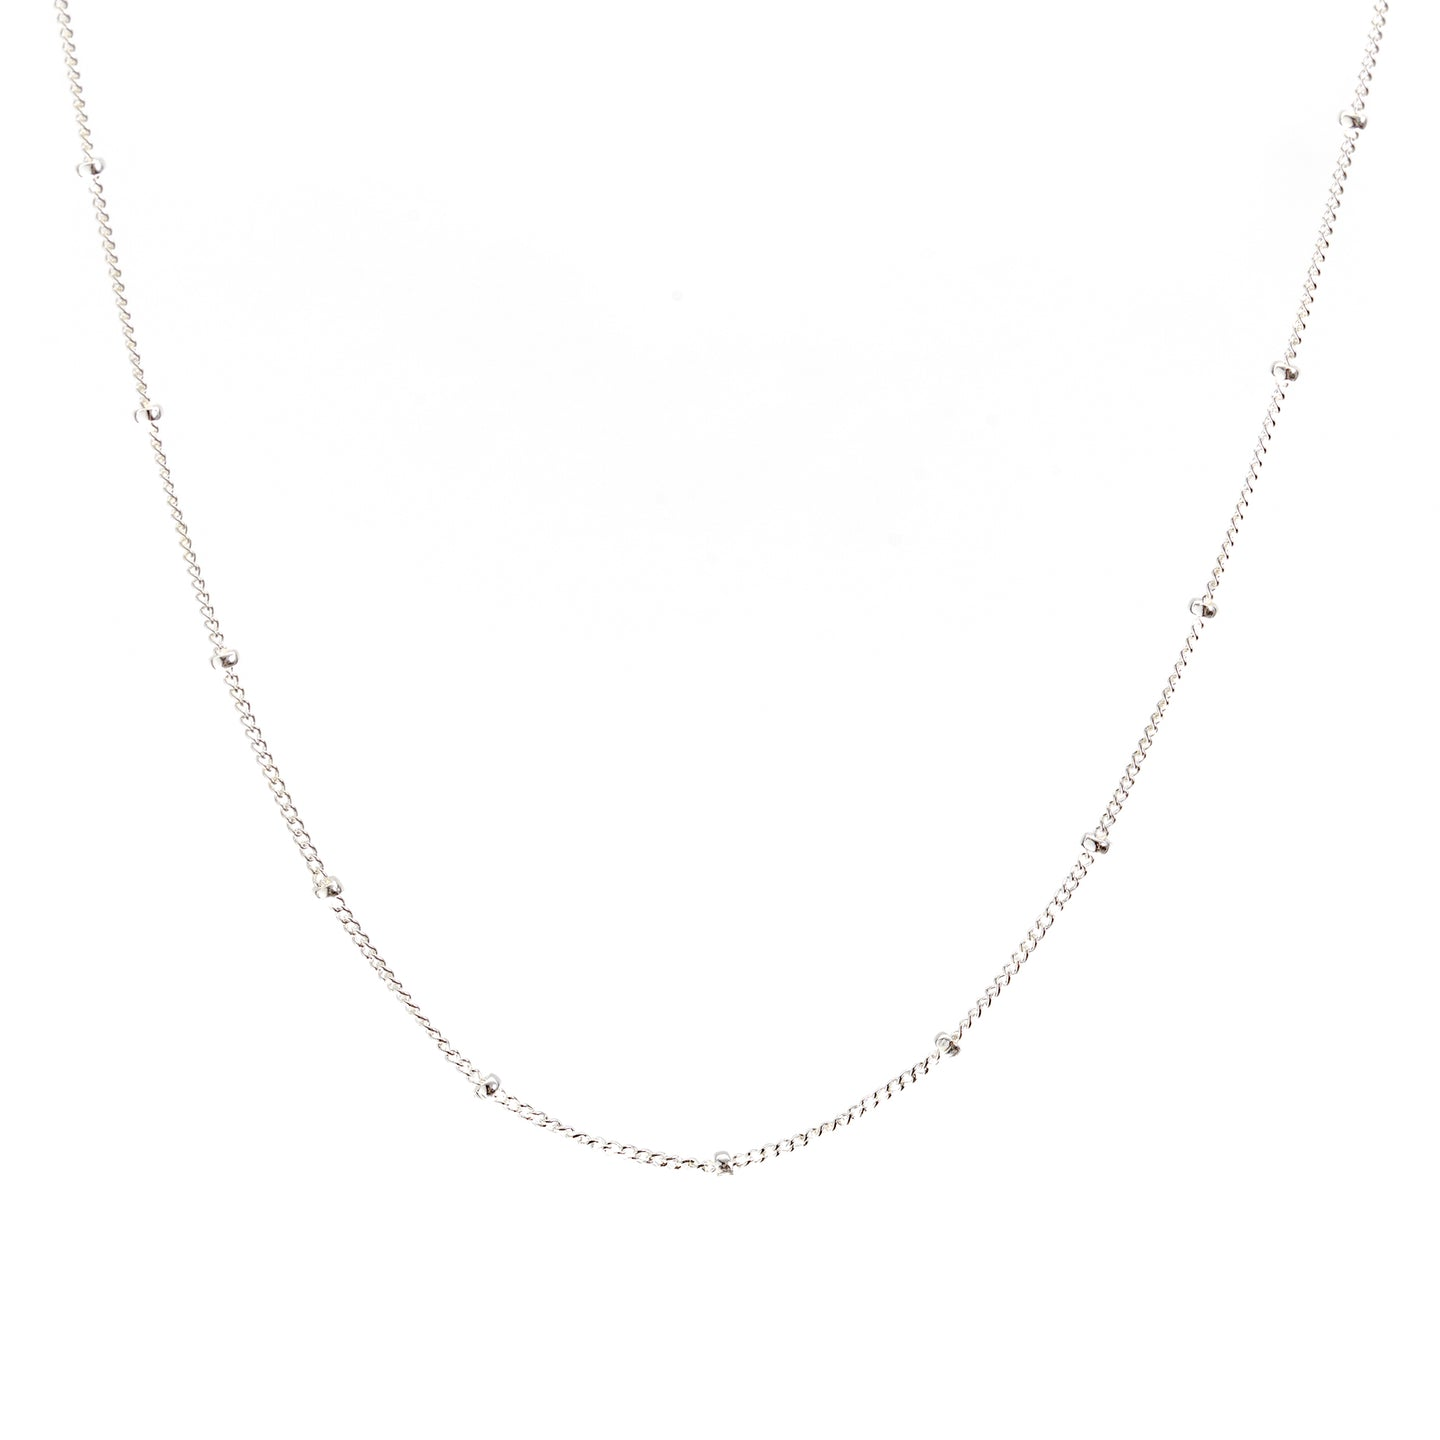 Minimal Satellite Chain Necklace